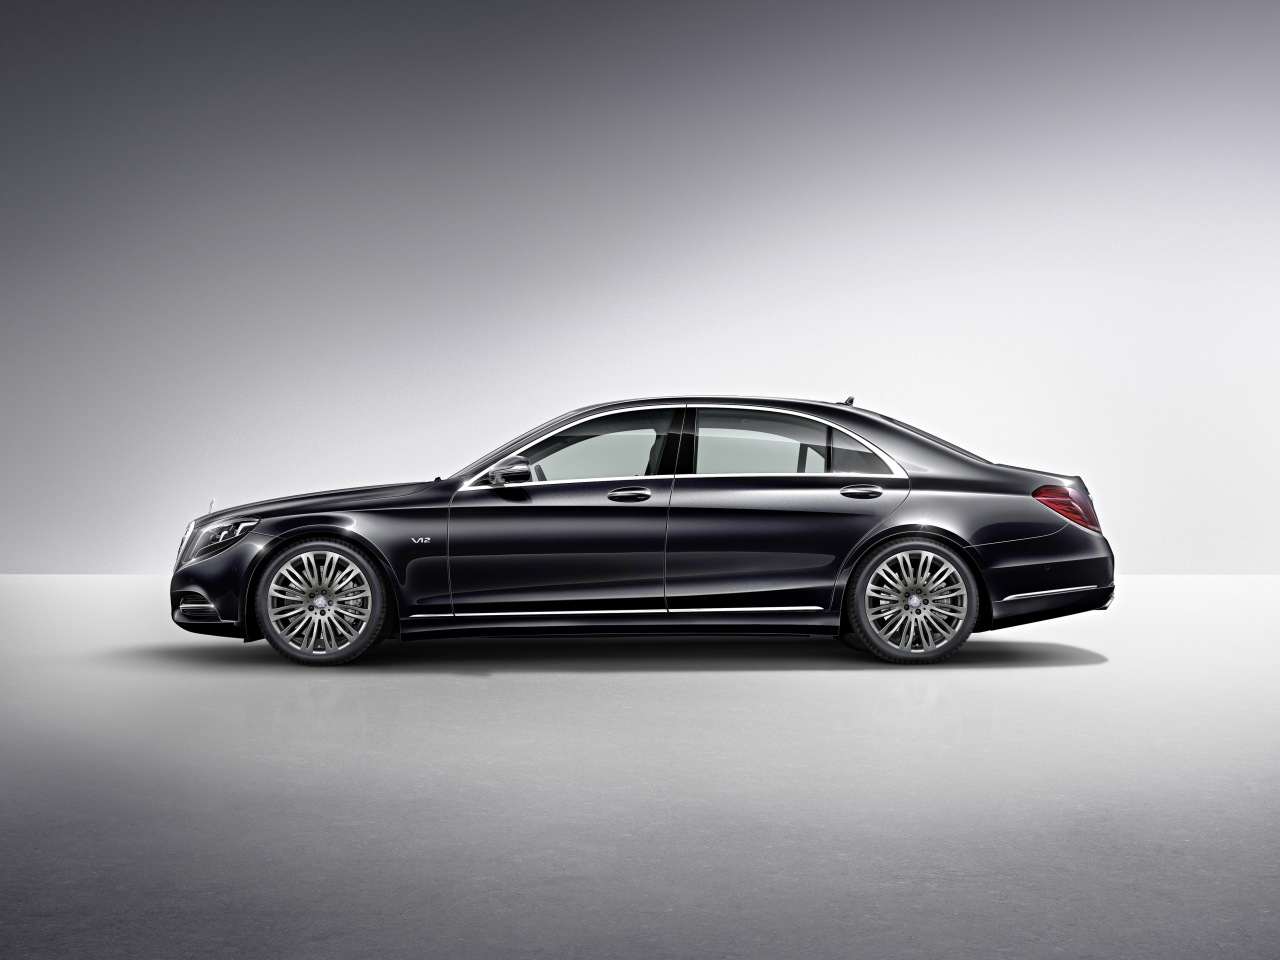 mercedes s600 2014 v12 bi turbo sous le capot l 39 argus. Black Bedroom Furniture Sets. Home Design Ideas